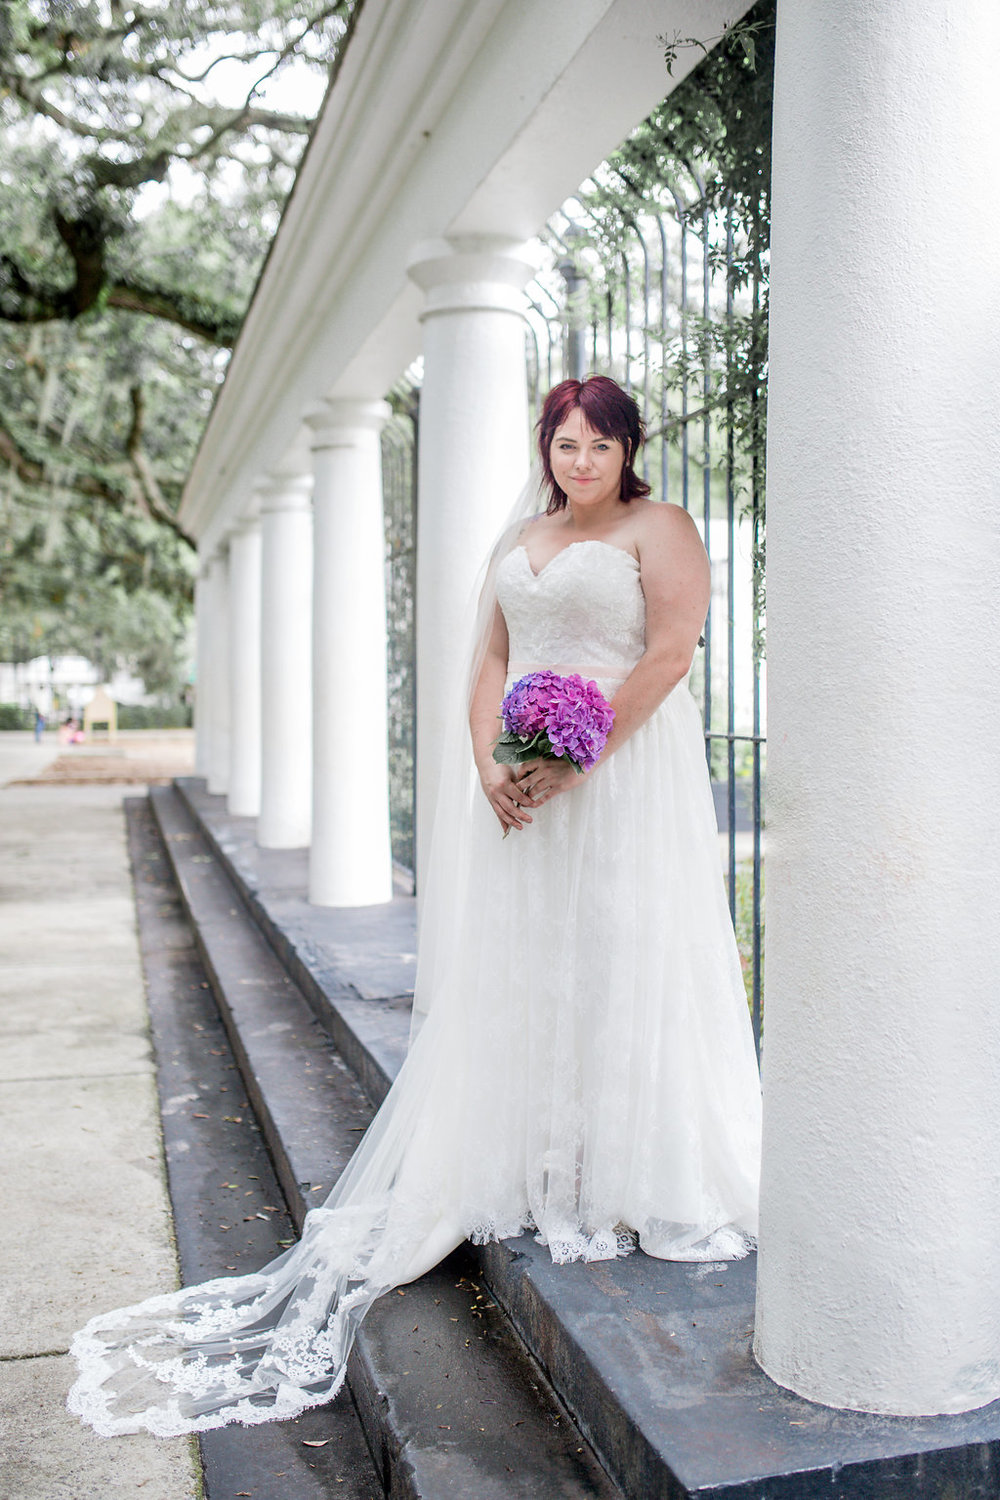 ivory-and-beau-bridal-boutique-alexis-sweet-photography-plus-sized-wedding-gowns-savannah-ga-plus-sized-wedding-dress-savannah-ga-7.jpg